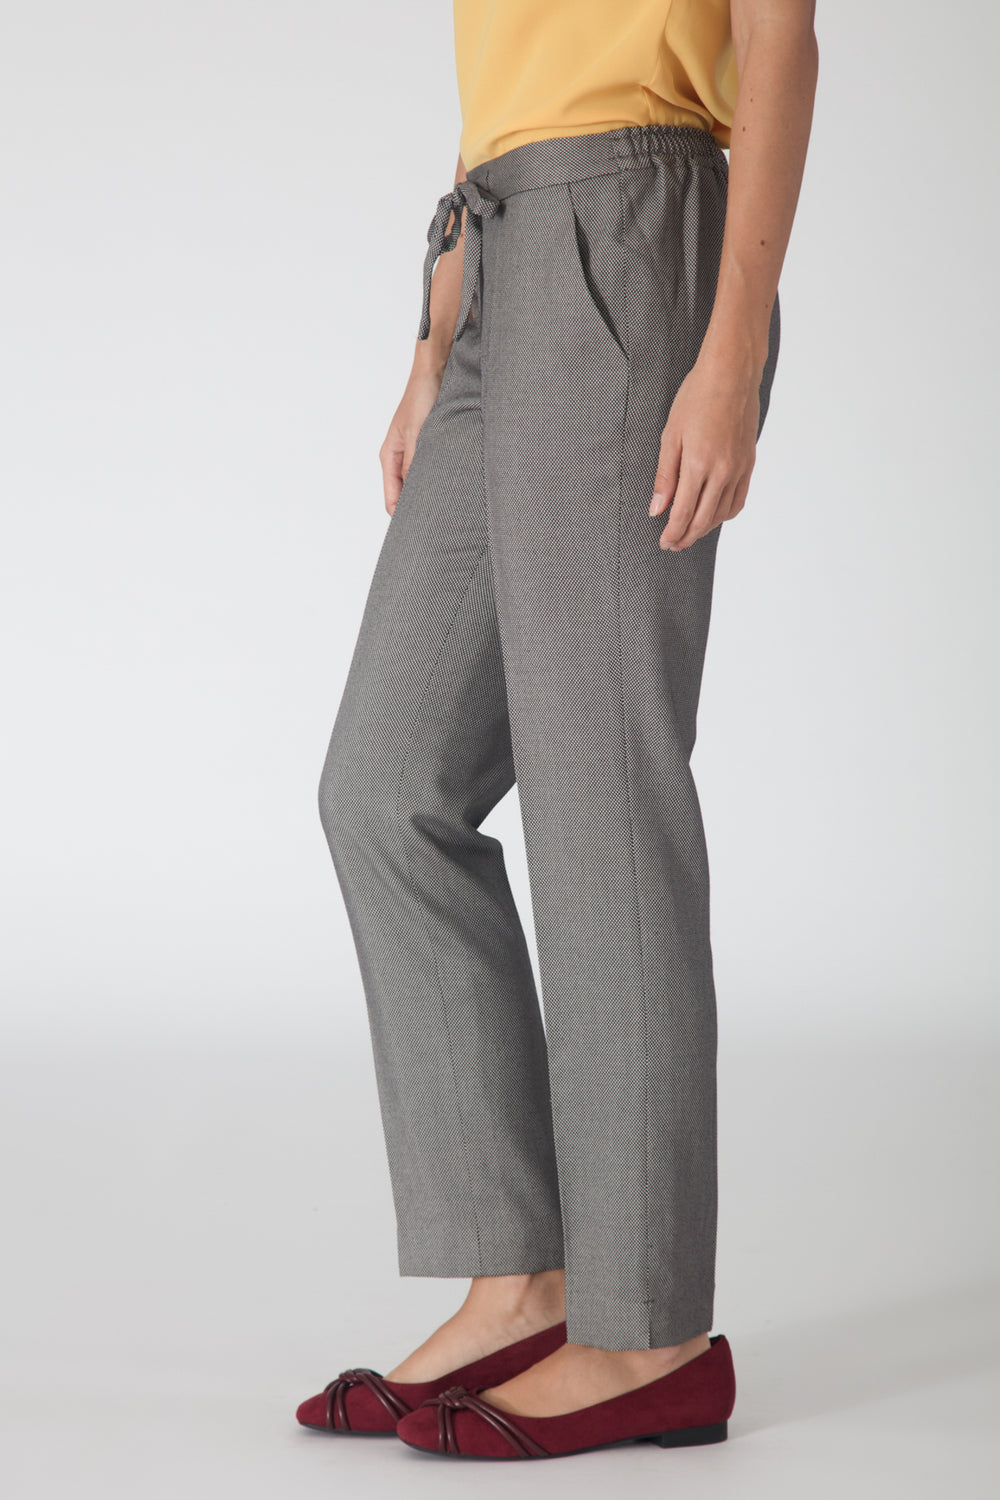 Grey Drawstring Pants